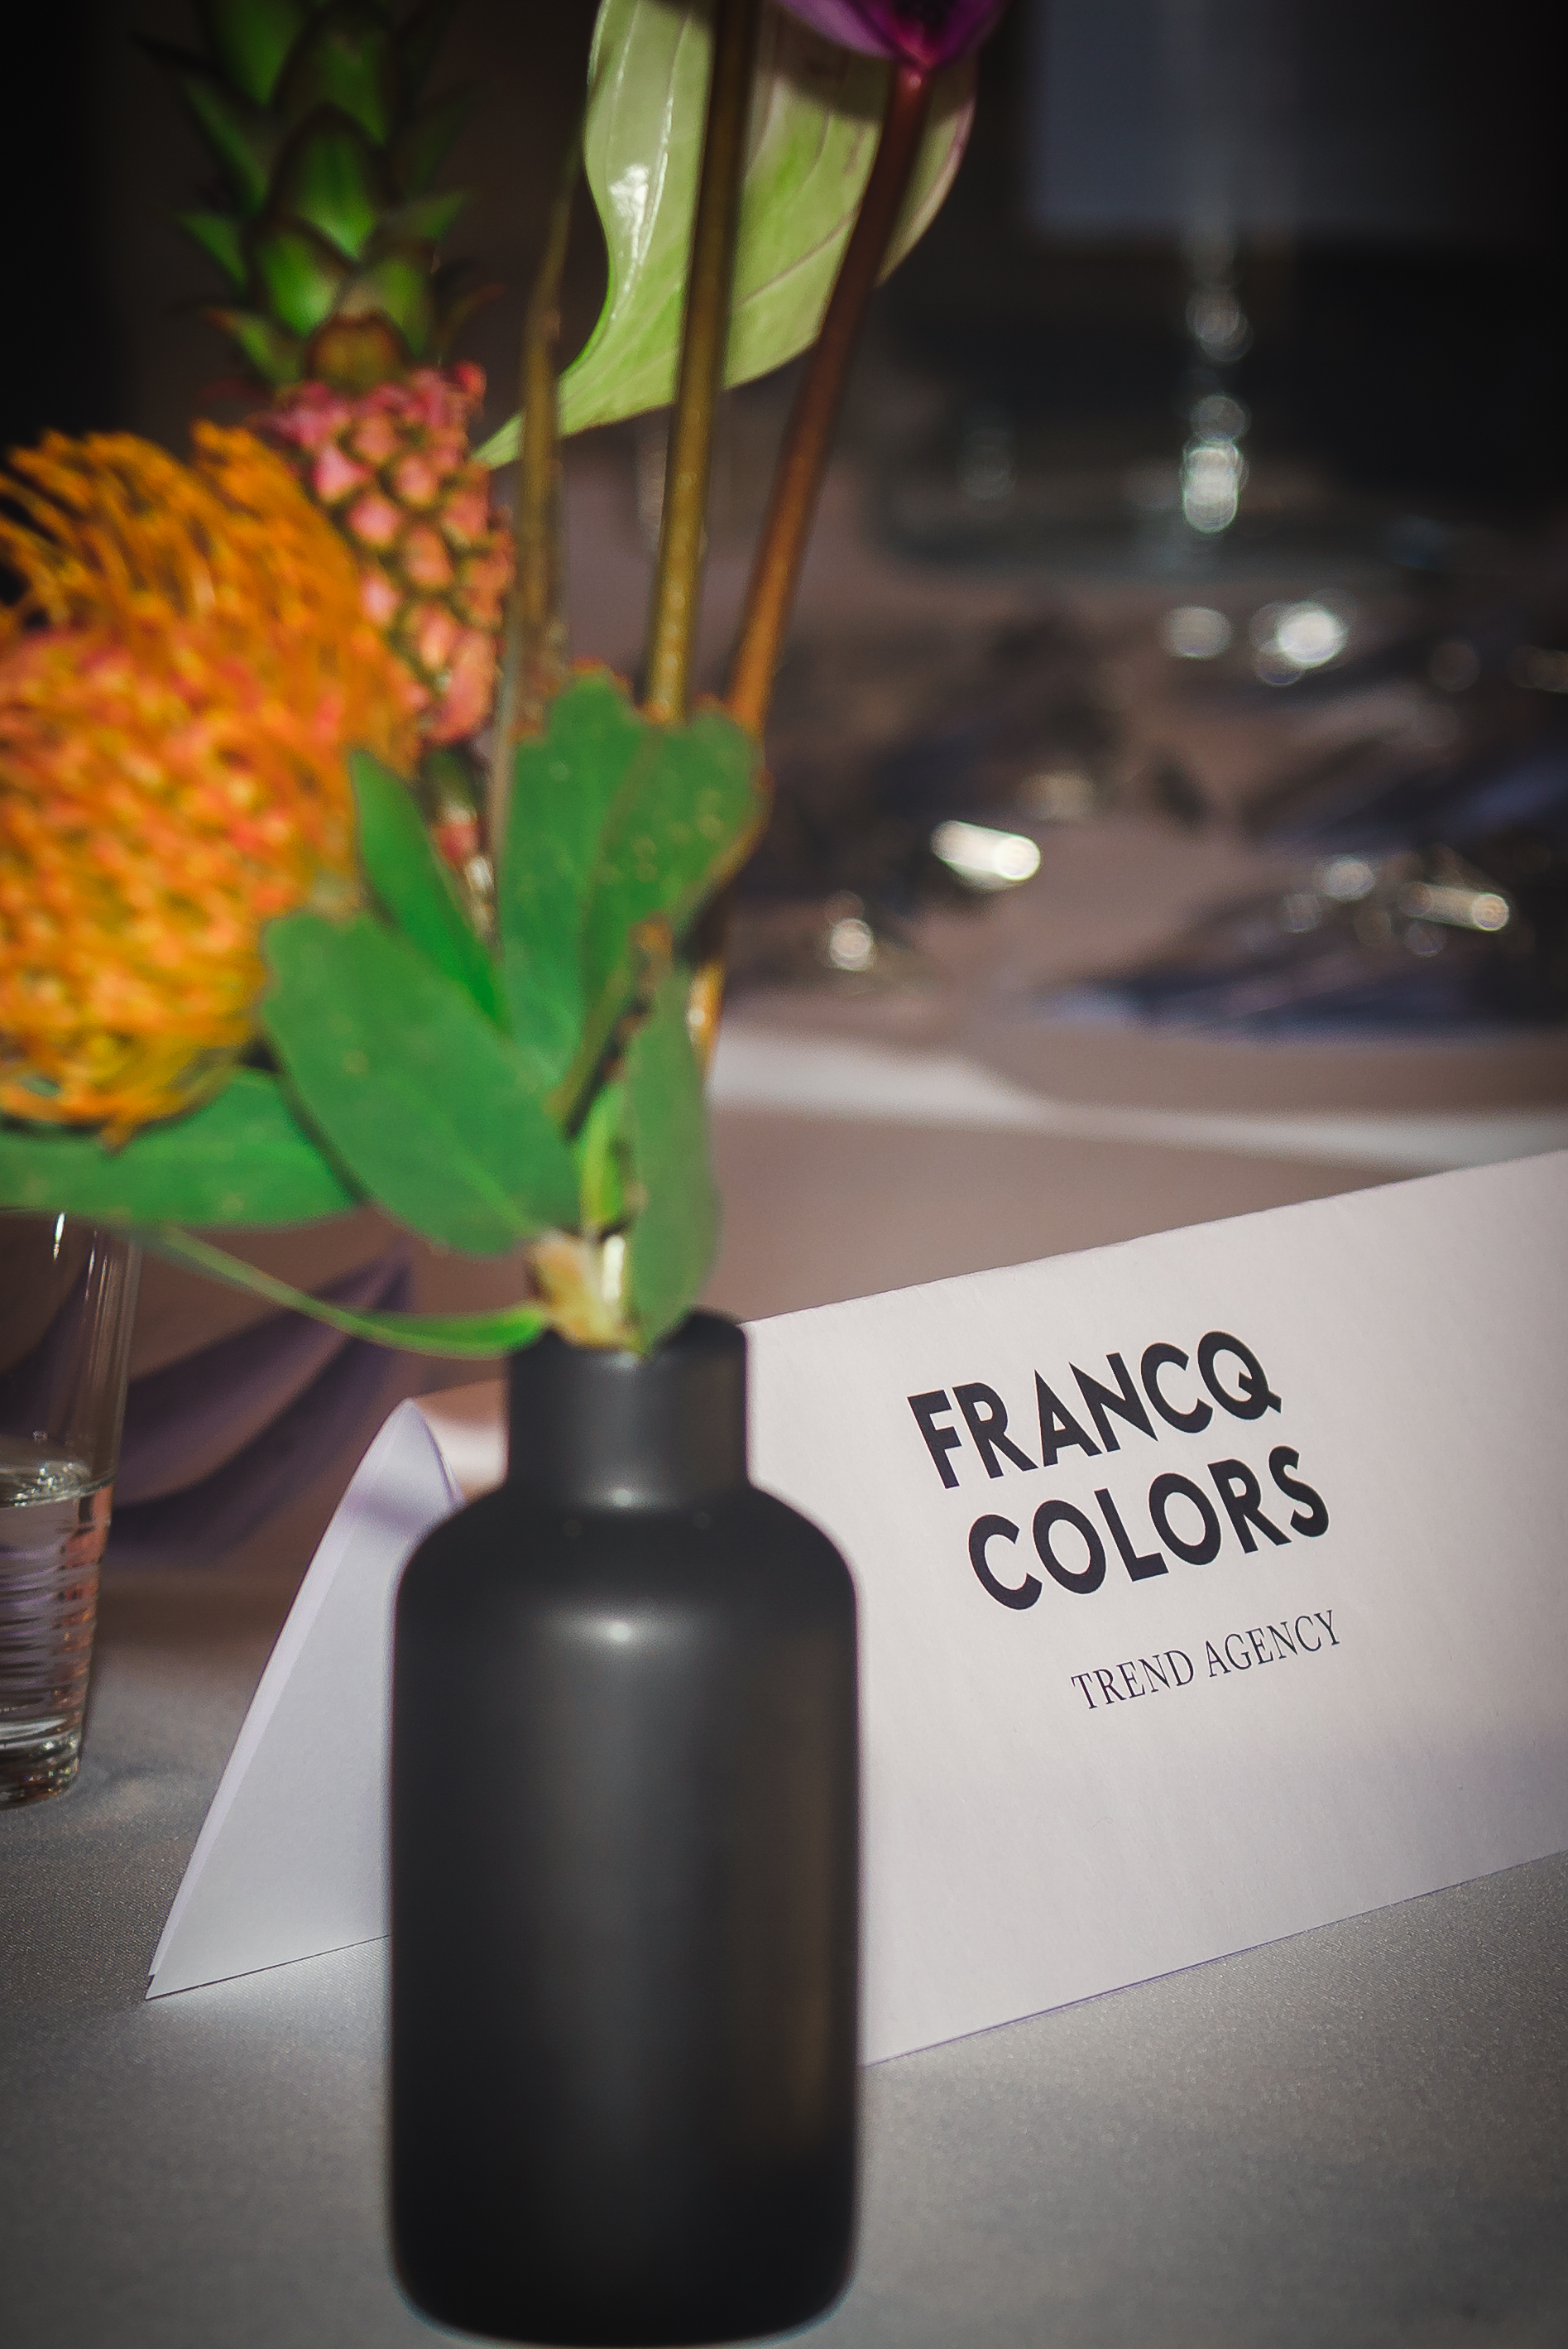 Francq Colors 17032016  10.jpg